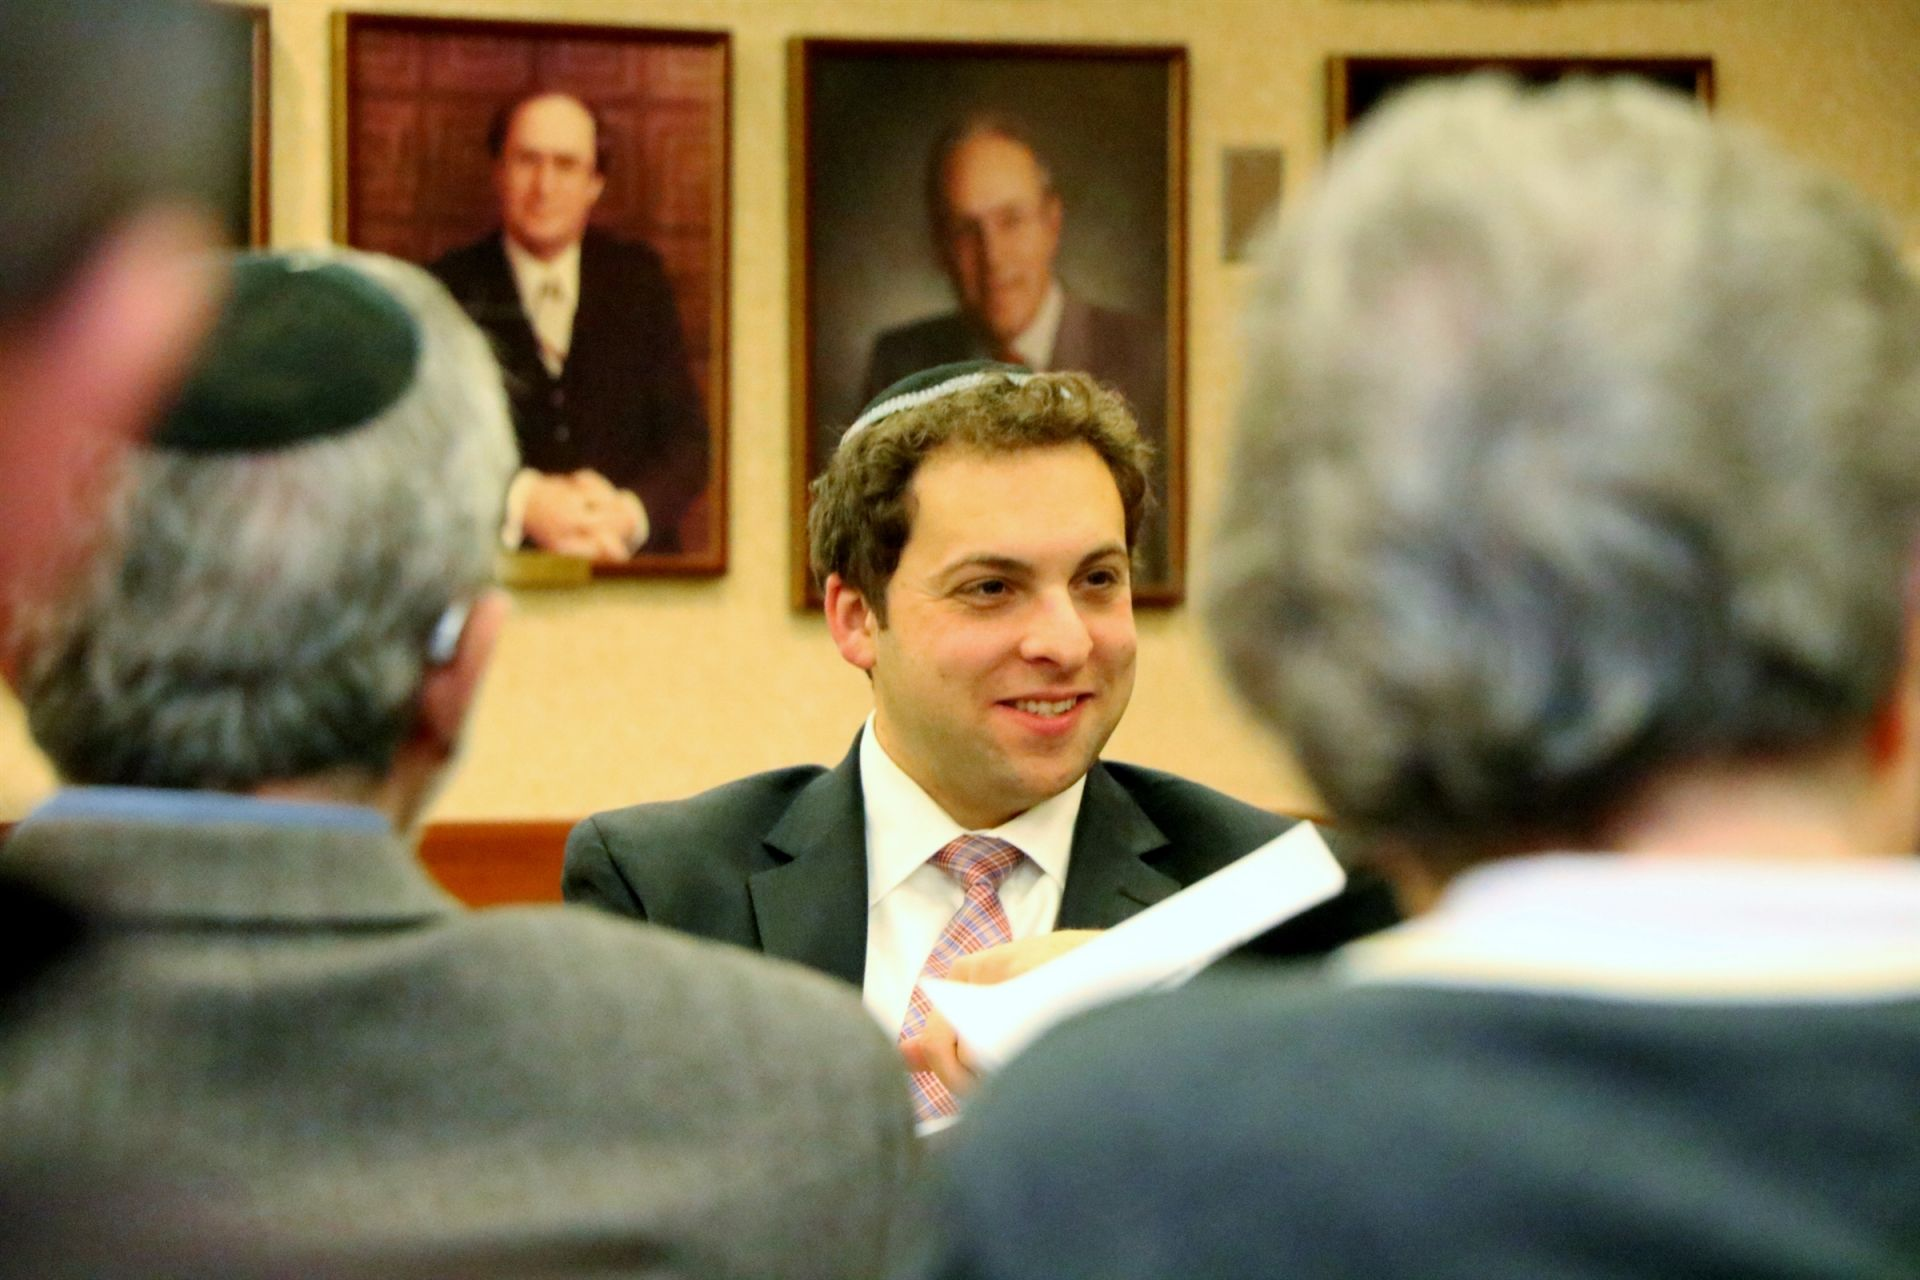 Rabbi Chai Posner